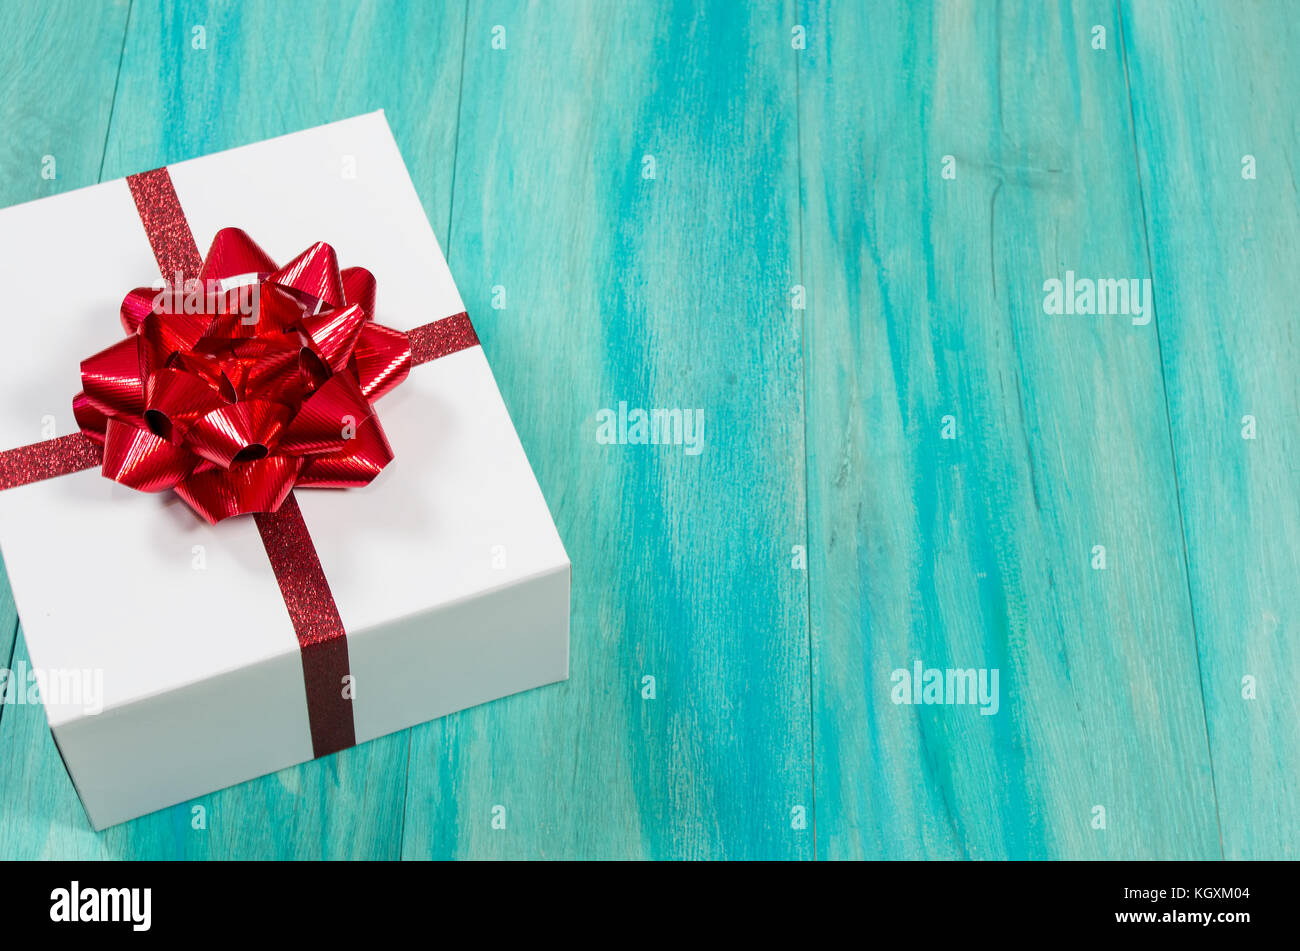 Offset Single Christmas present with red bow on a distressed teal wood background - Stock Image